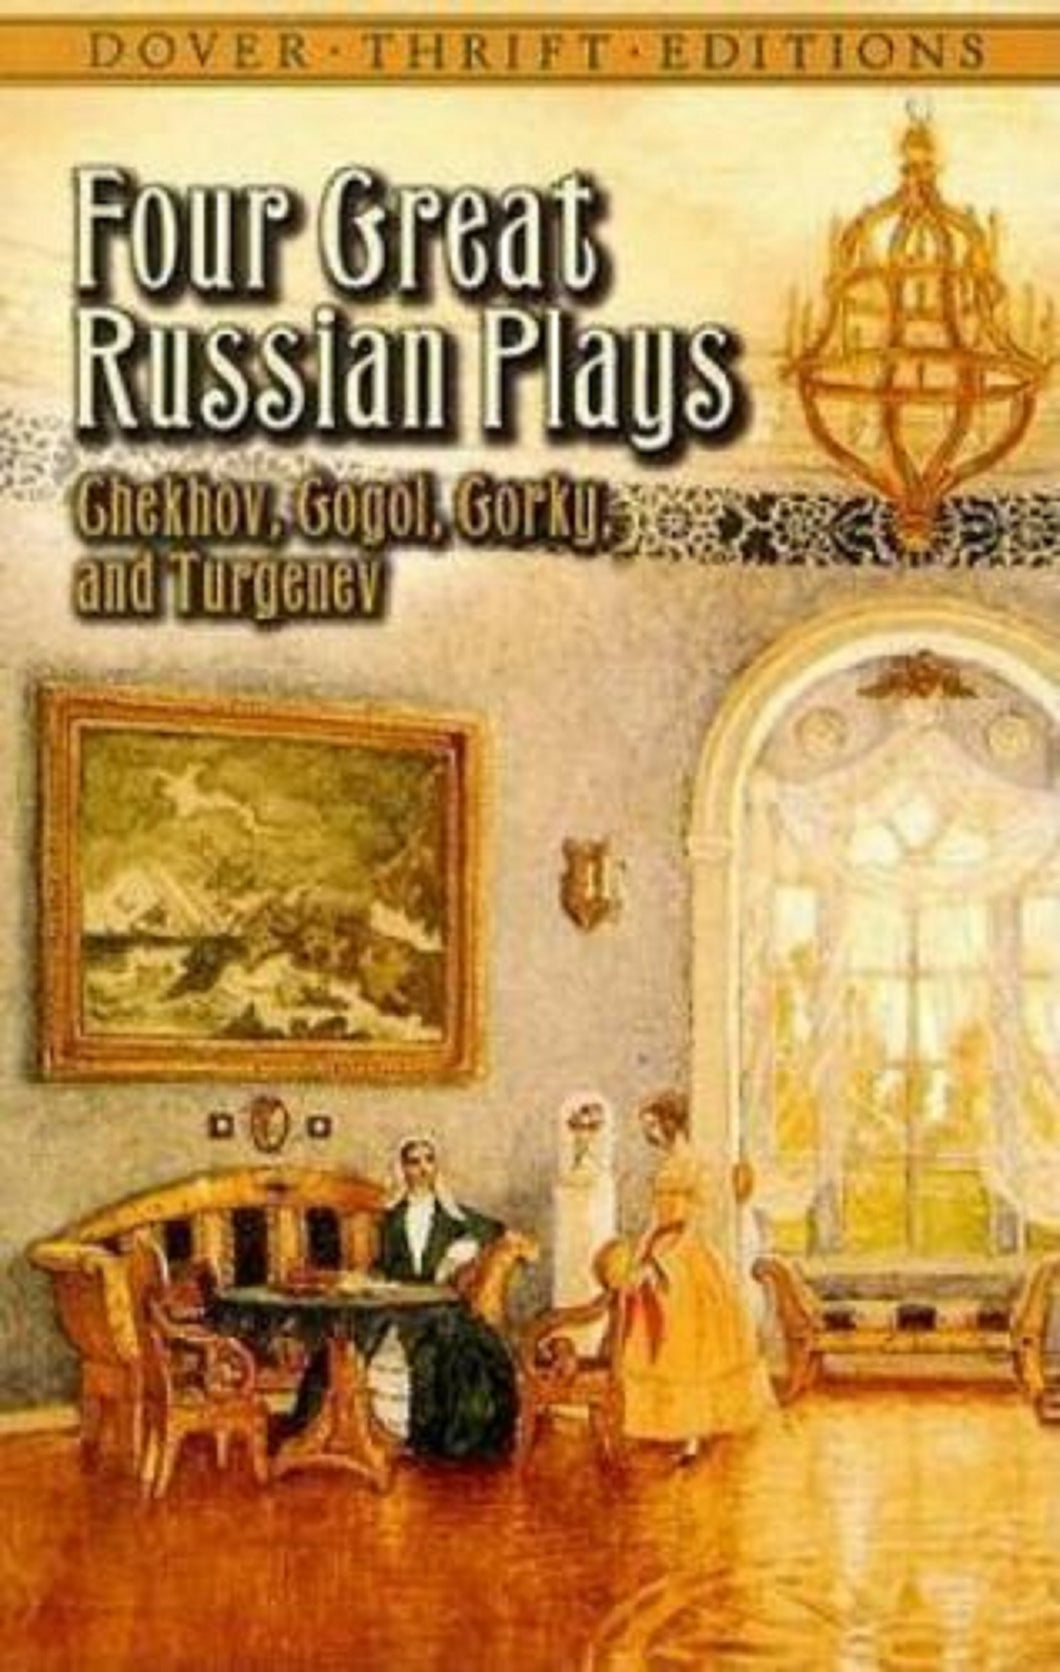 Russian Playwright Writers Checkov Gogol Gorky Turgenev in English